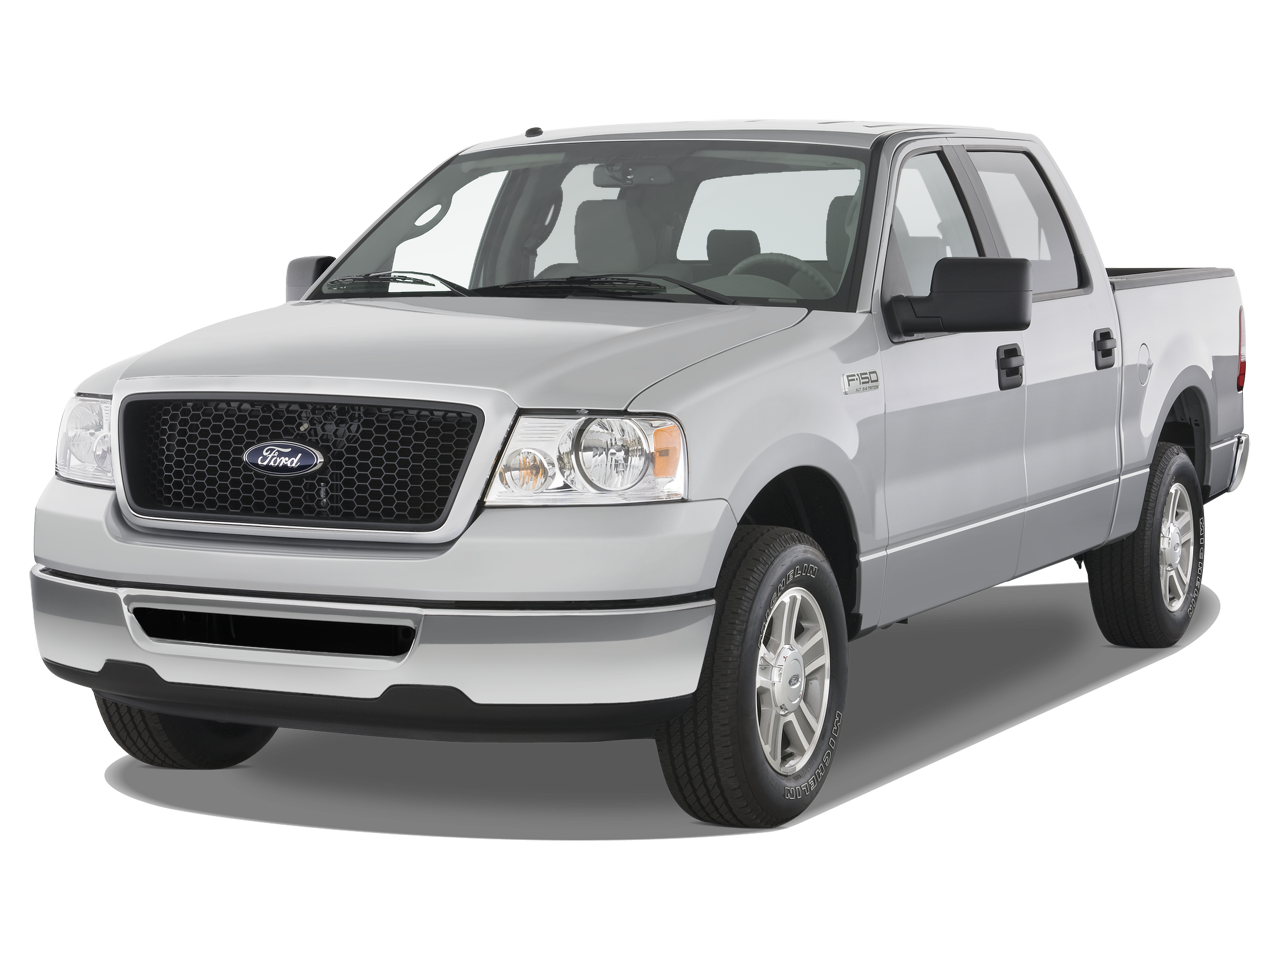 lp powered 2008 ford f150 roush truck fuel efficient news car features and reviews. Black Bedroom Furniture Sets. Home Design Ideas